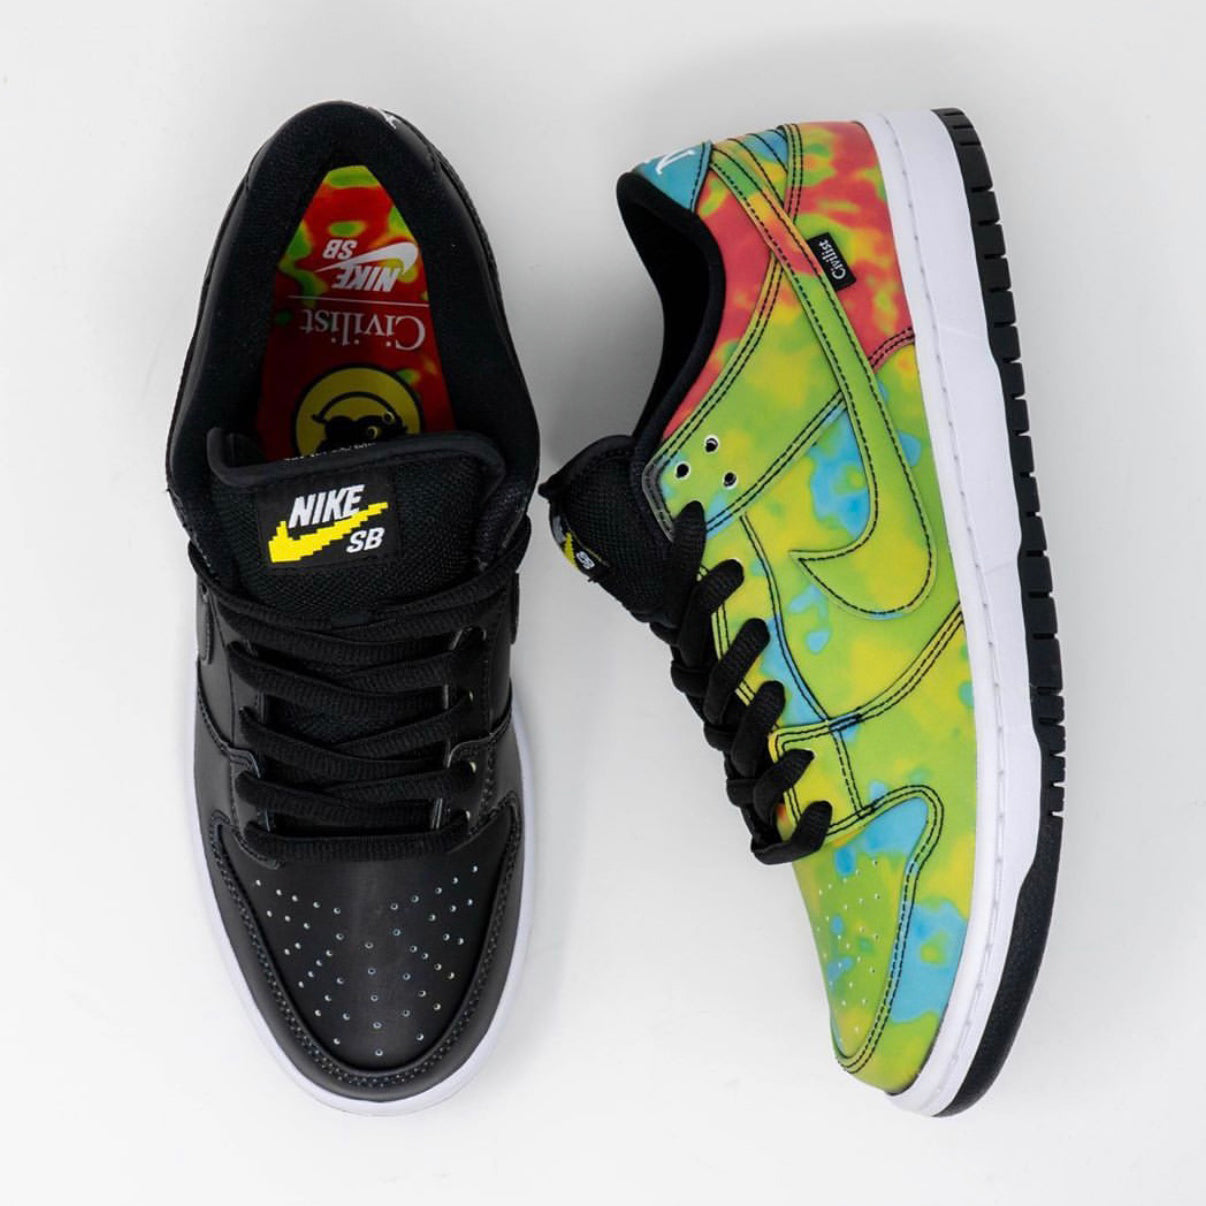 Civilist Berlin X Nike SB Dunk Low Raffle - Orchard Skateshop